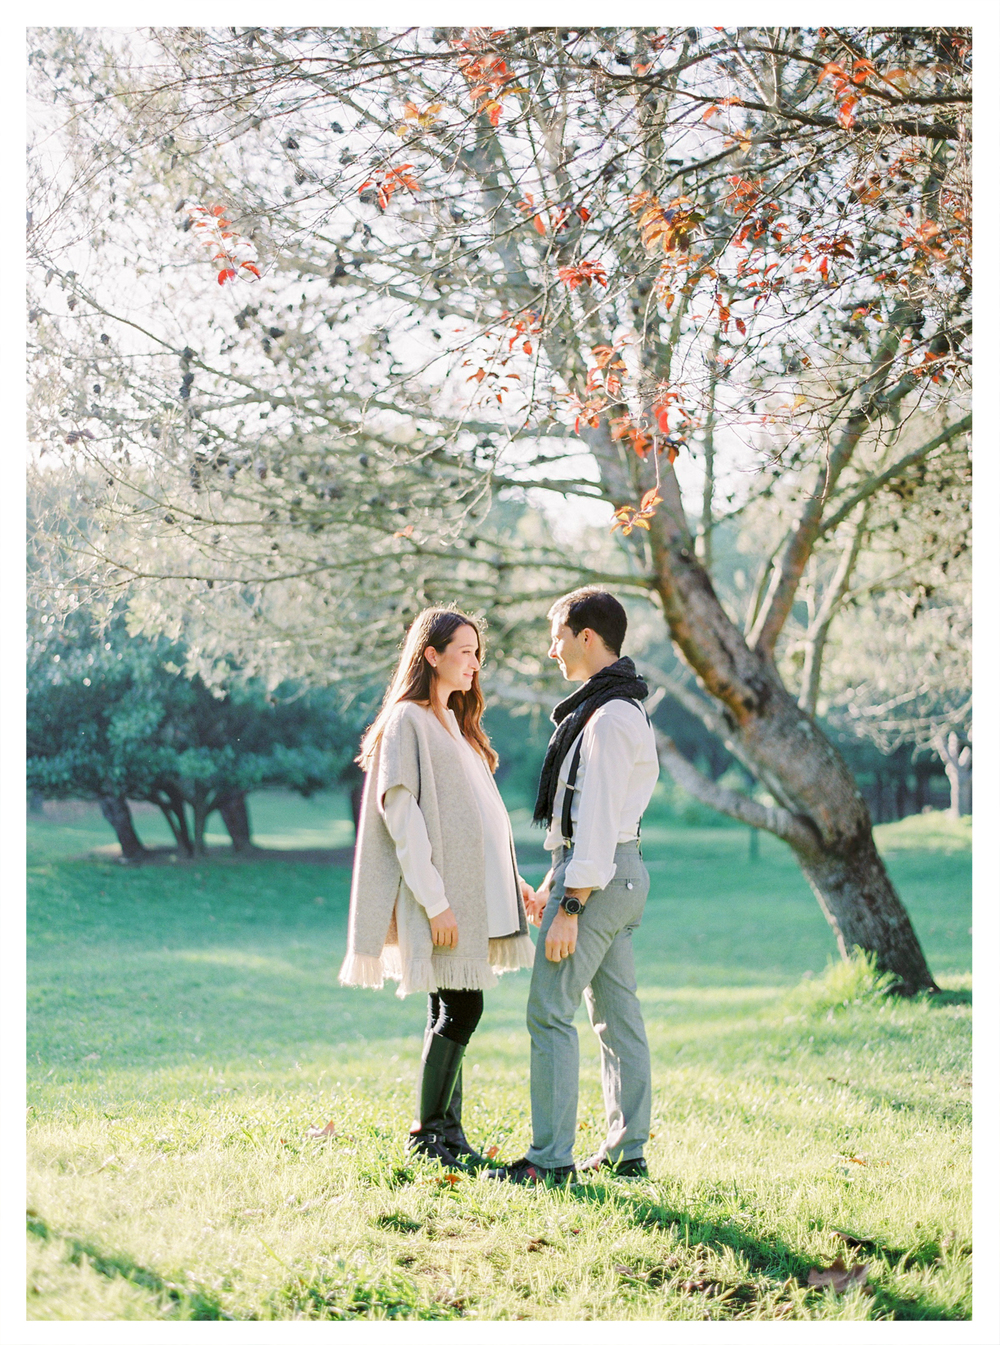 maternity portrait film photography